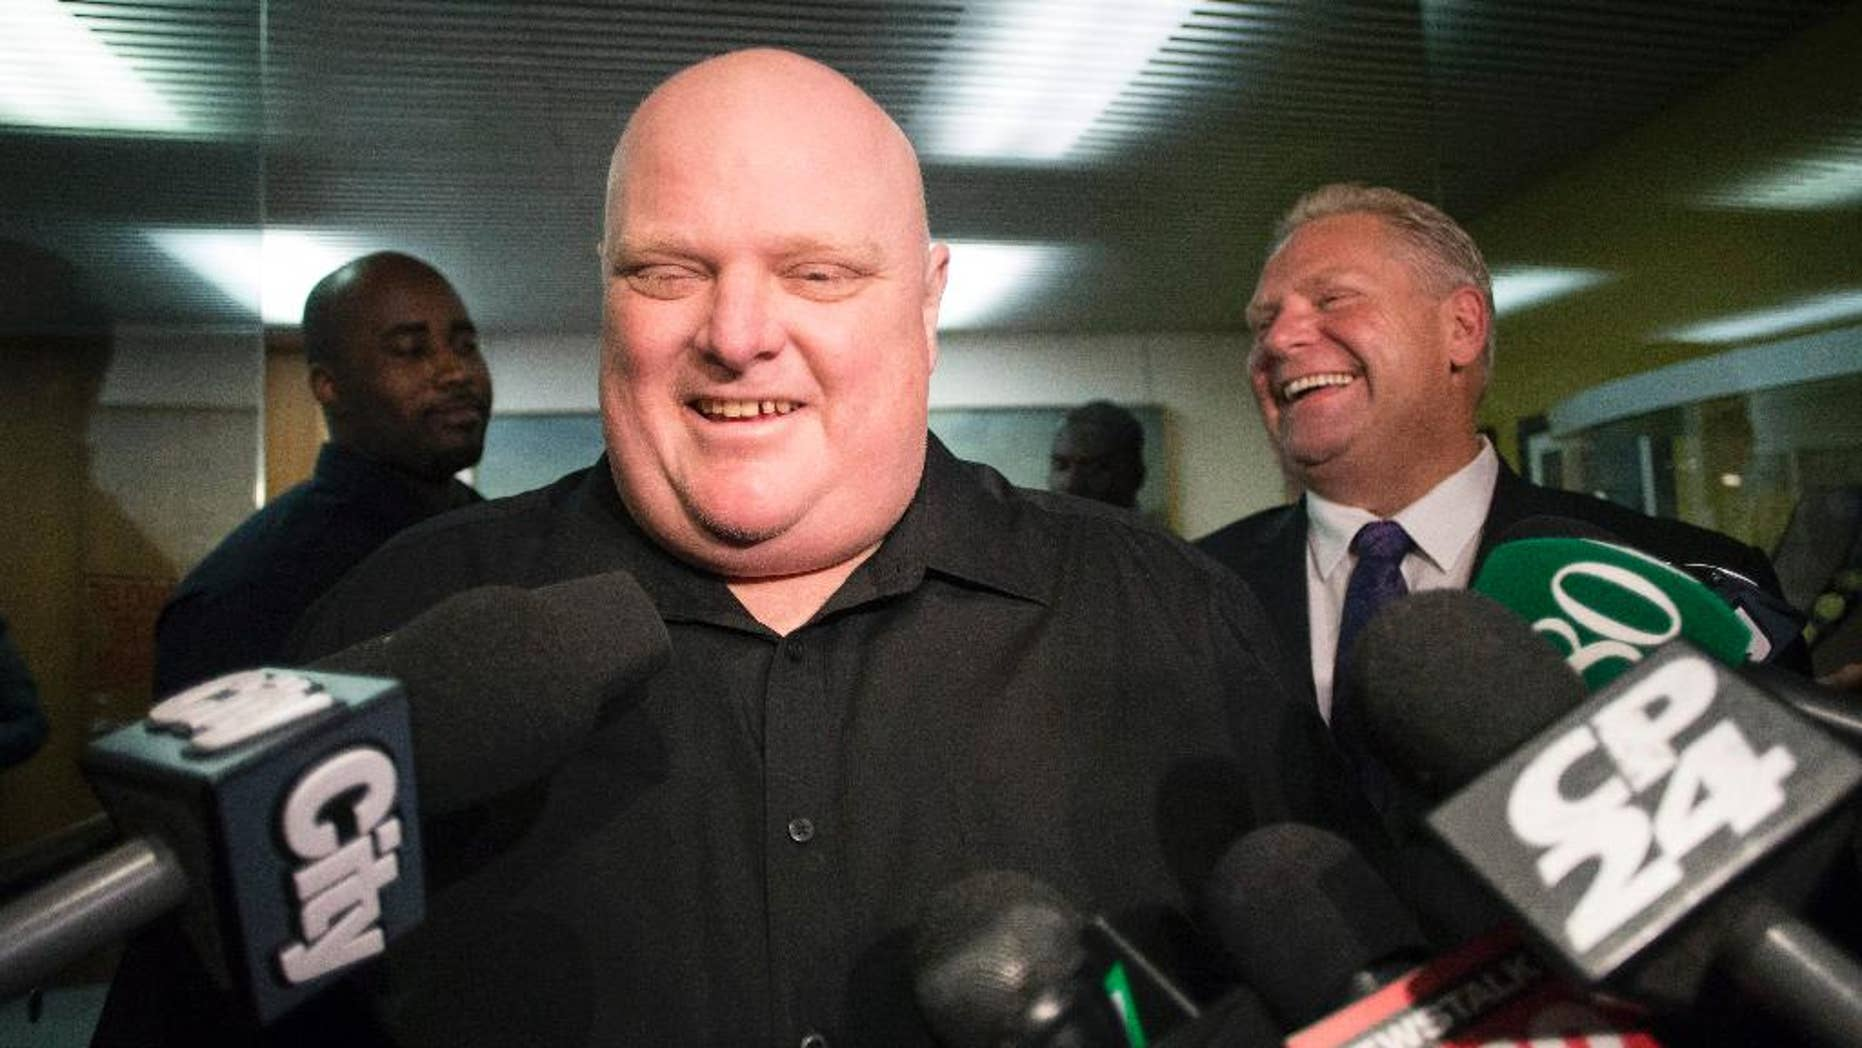 FILE - In this Nov. 21, 2014, file photo, Toronto's outgoing Mayor Rob Ford, front center, stands next to his brother Doug Ford outside his office as he speaks with the media before signing bobblehead dolls in in his likeness in Toronto. The notorious former Toronto mayor and now city councilor is auctioning off some of the memorabilia he has collected over the years. Ford's term was plagued by scandals involving drinking, crack cocaine use and erratic behavior. (AP Photo/The Canadian Press, Chris Young, File)